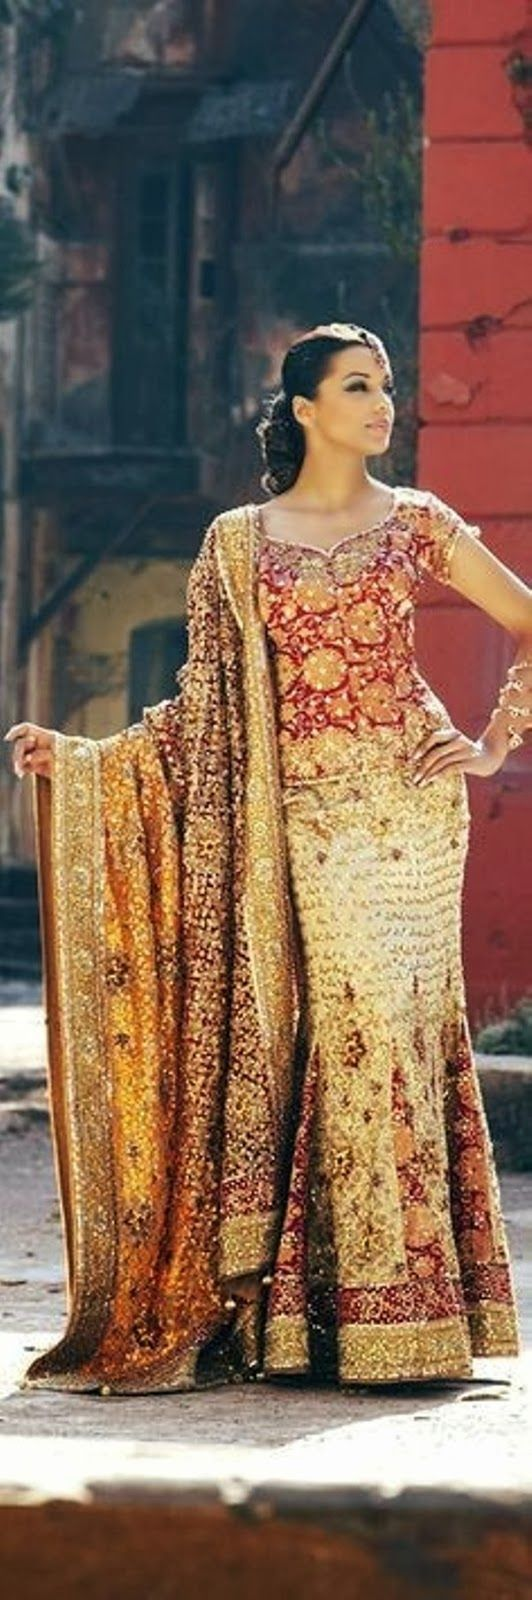 Nice Muslim Wedding Dresses Indian Wedding Dresses 2014 Especially Design for Girls and Women's... Check more at http://24myshop.ml/my-desires/muslim-wedding-dresses-indian-wedding-dresses-2014-especially-design-for-girls-and-womens/